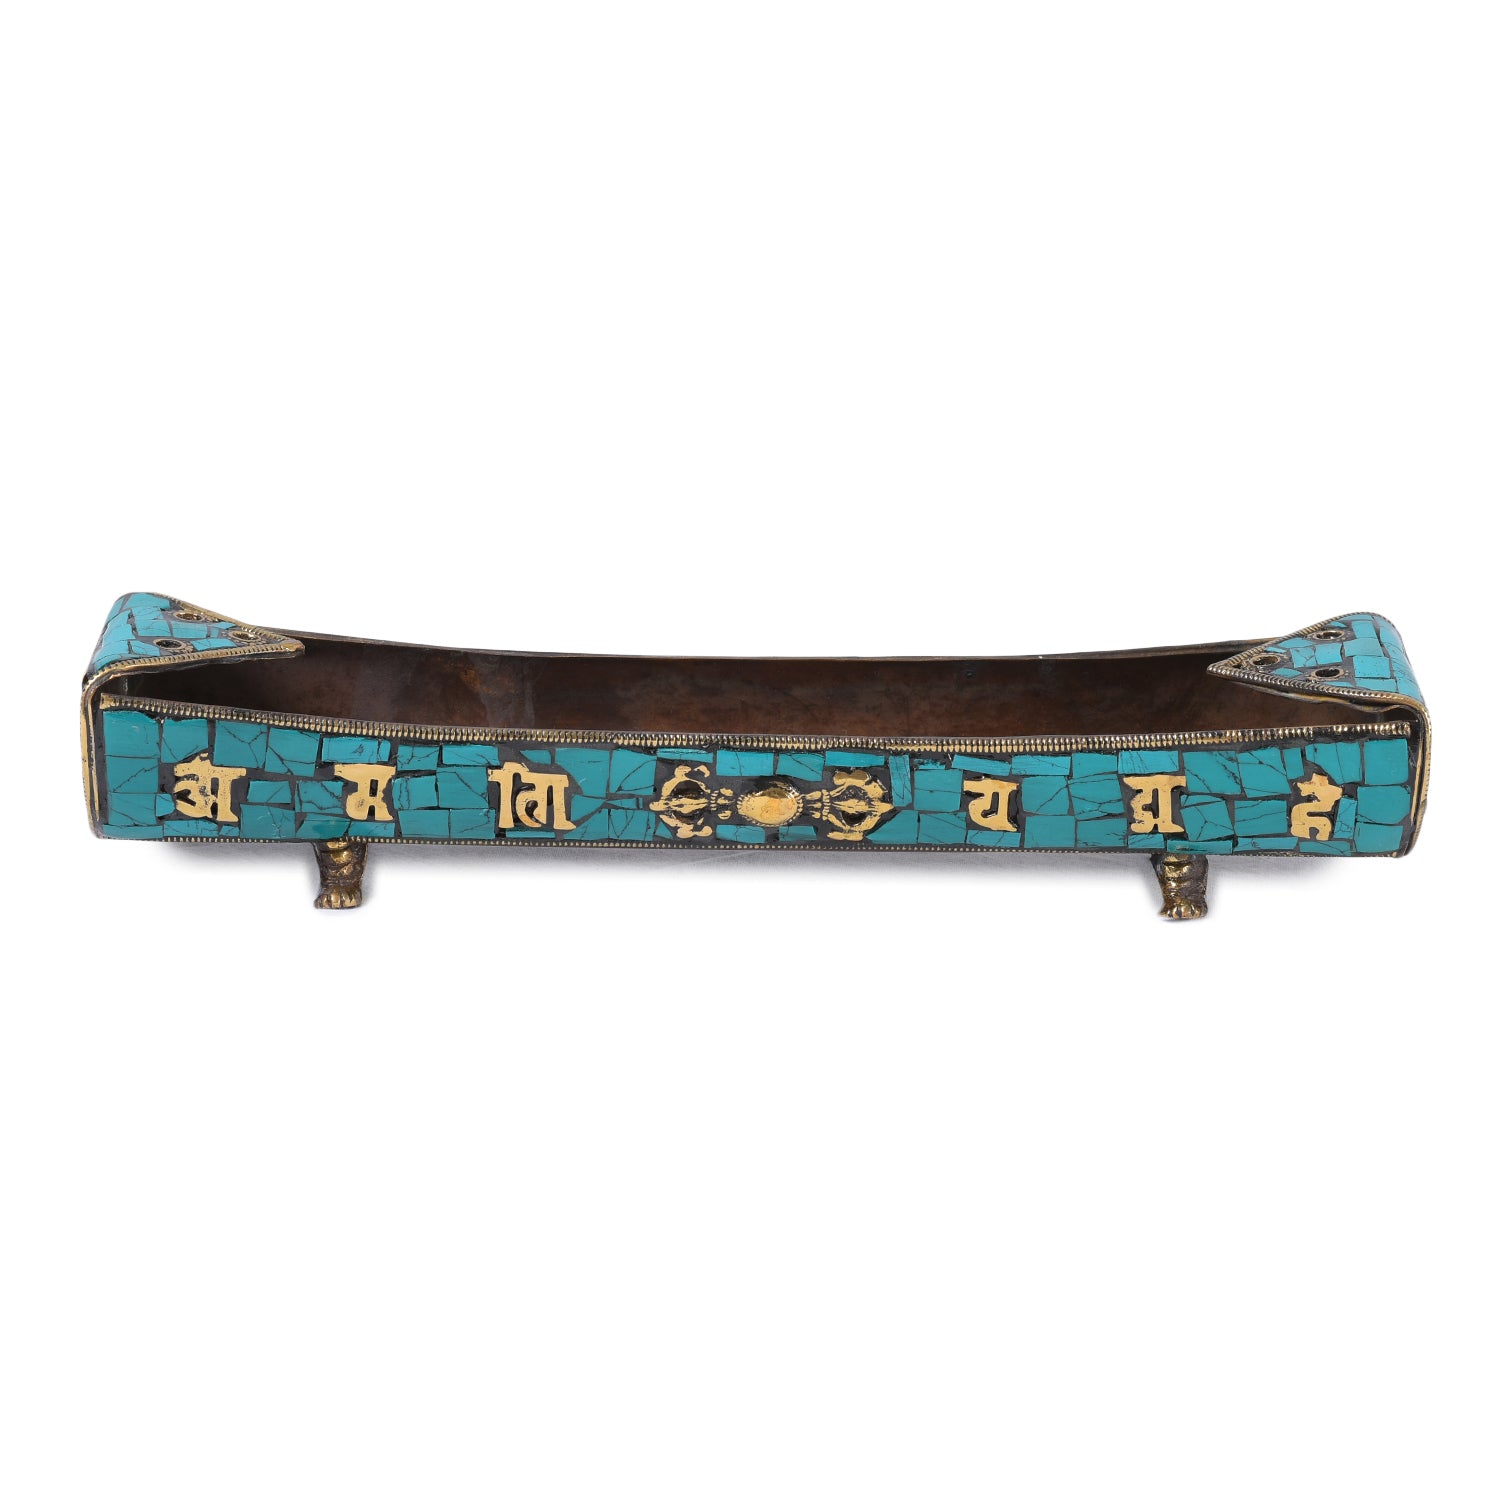 The Turquoise Boat - Incense Holder